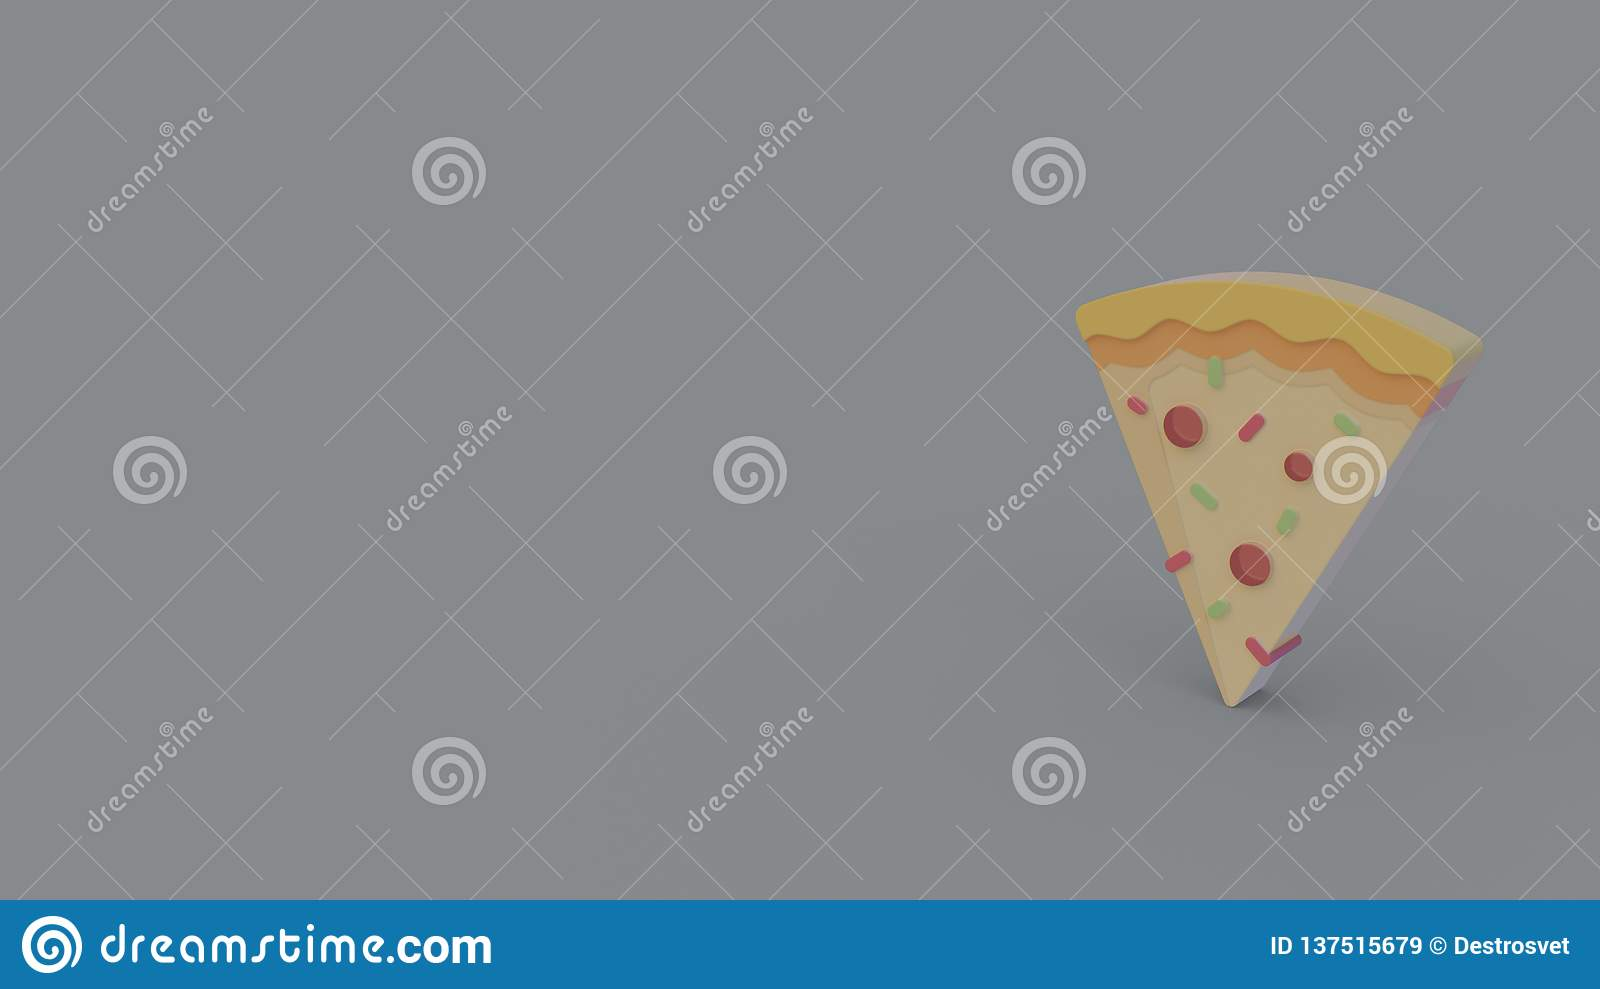 3d icon of pizza